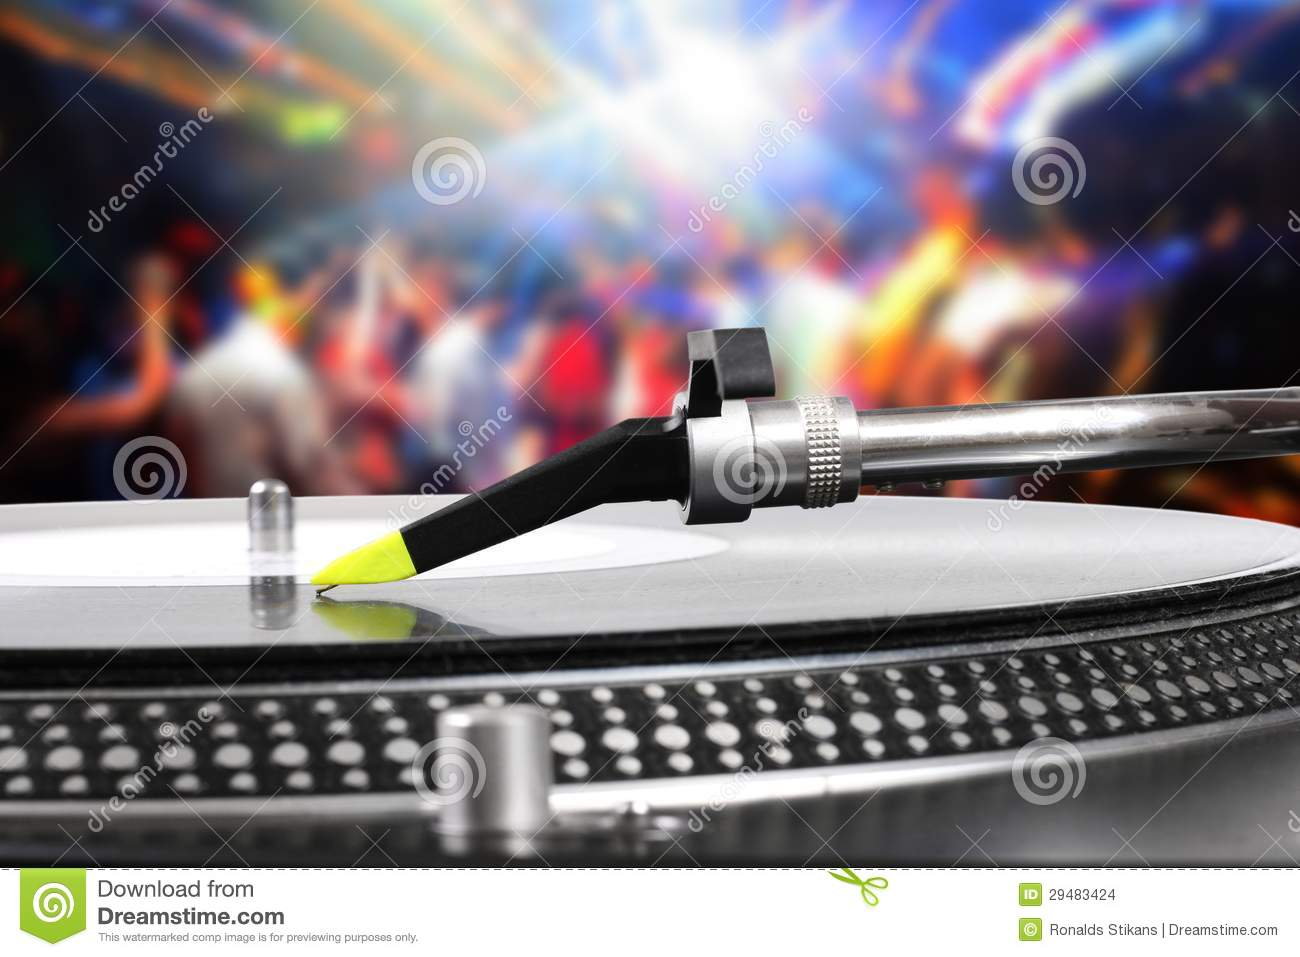 Dj Turntable With Vinyl Record In The Dance Club Stock